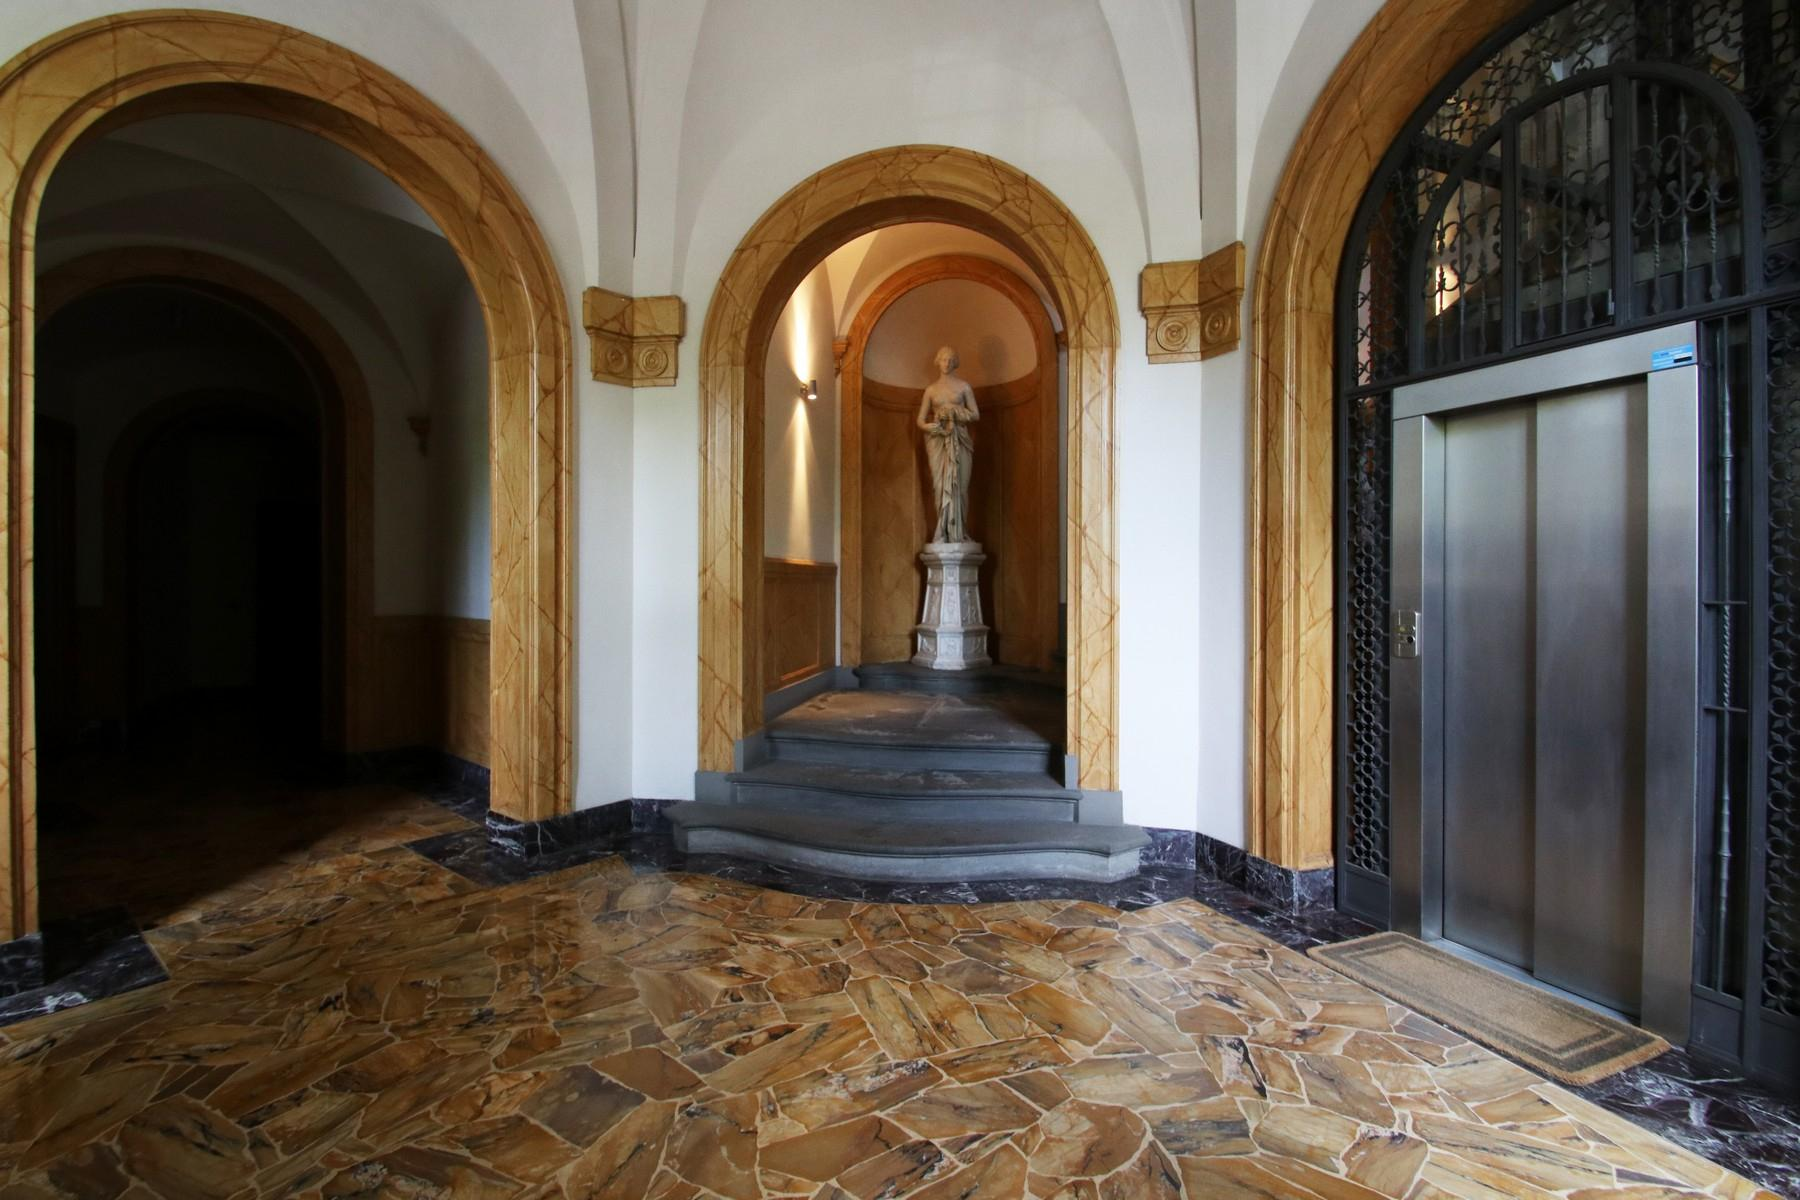 Flamboyant Top-floor Apartment with Tower in Bellosguardo, Florence - 4